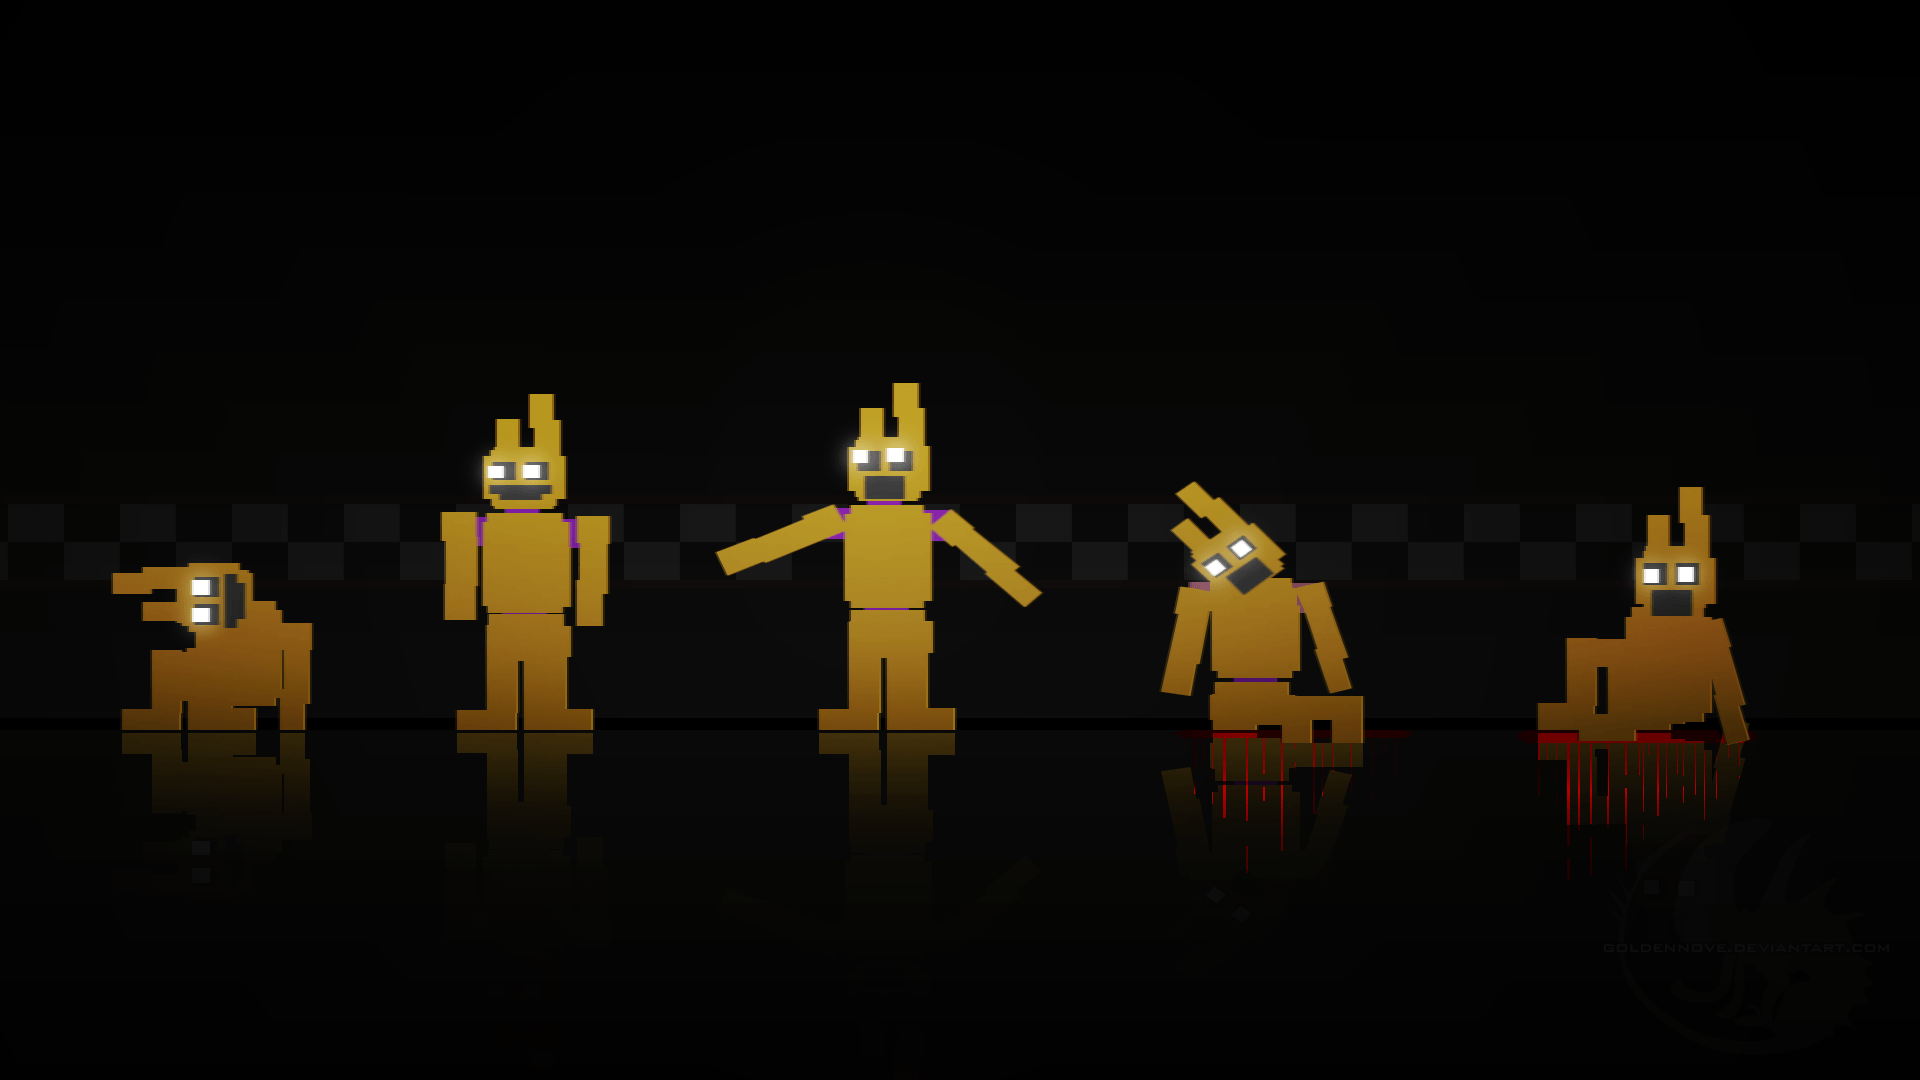 Five Nights At Freddys FNAF Wallpapers 1920x1080